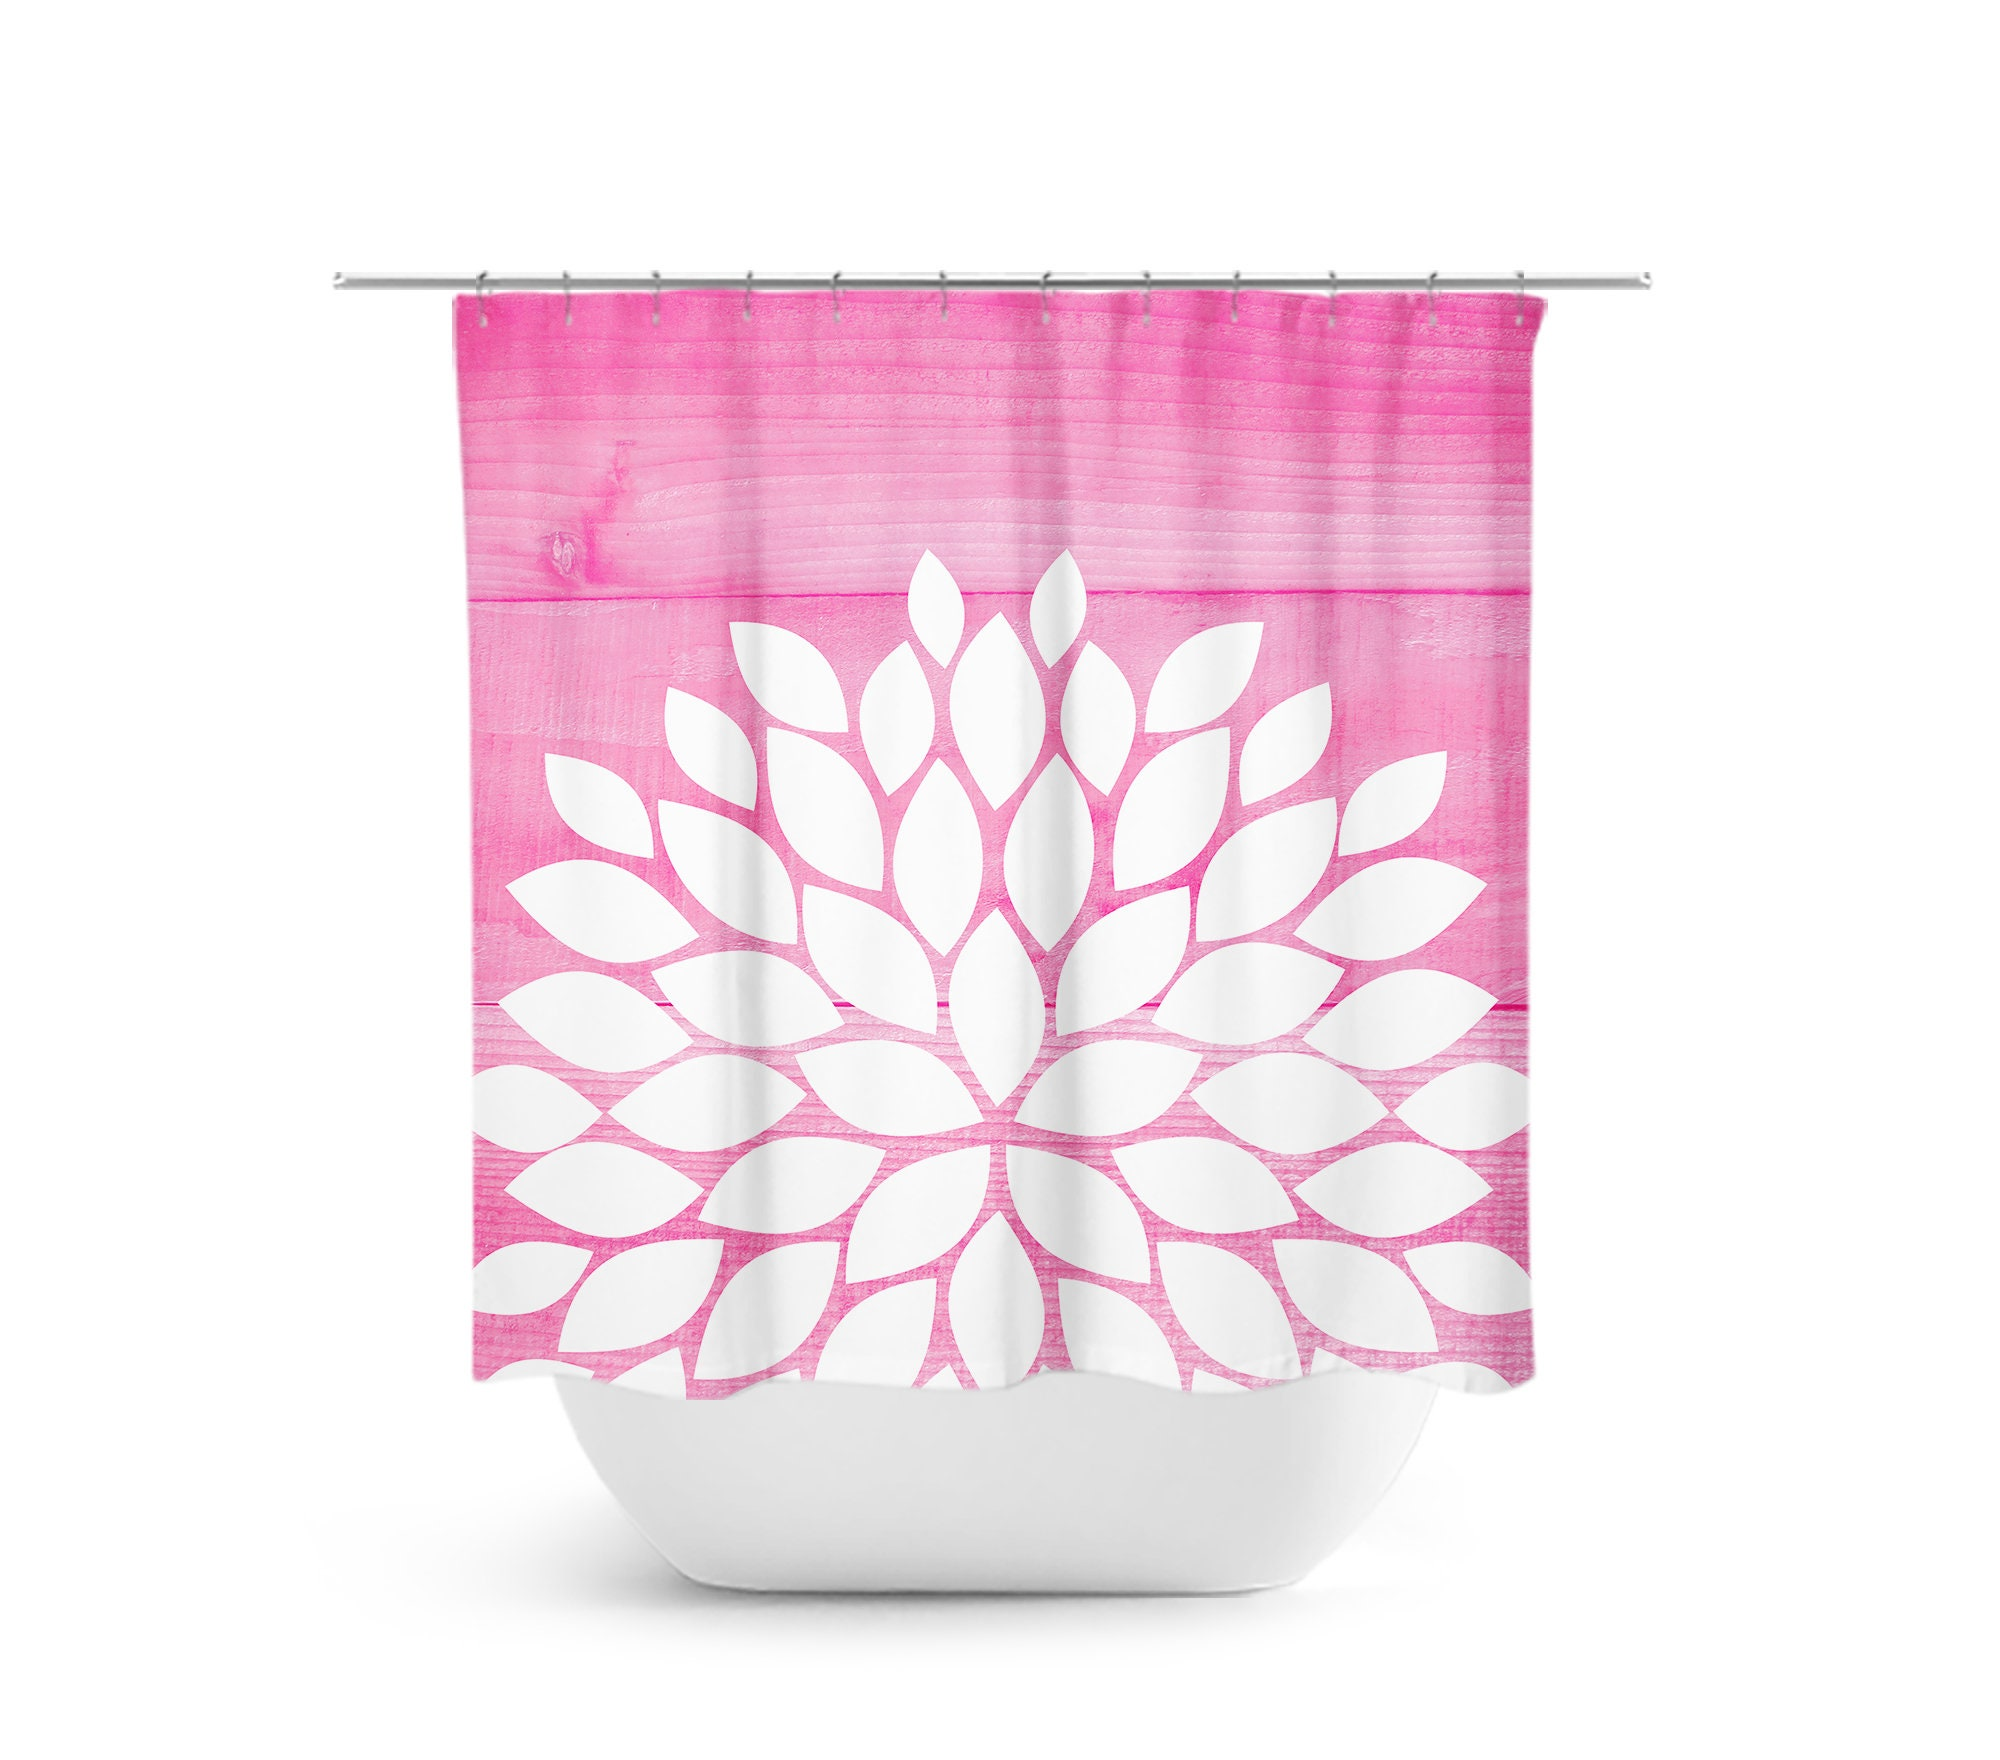 Flower Shower Curtain Pink And White Bathroom Decor